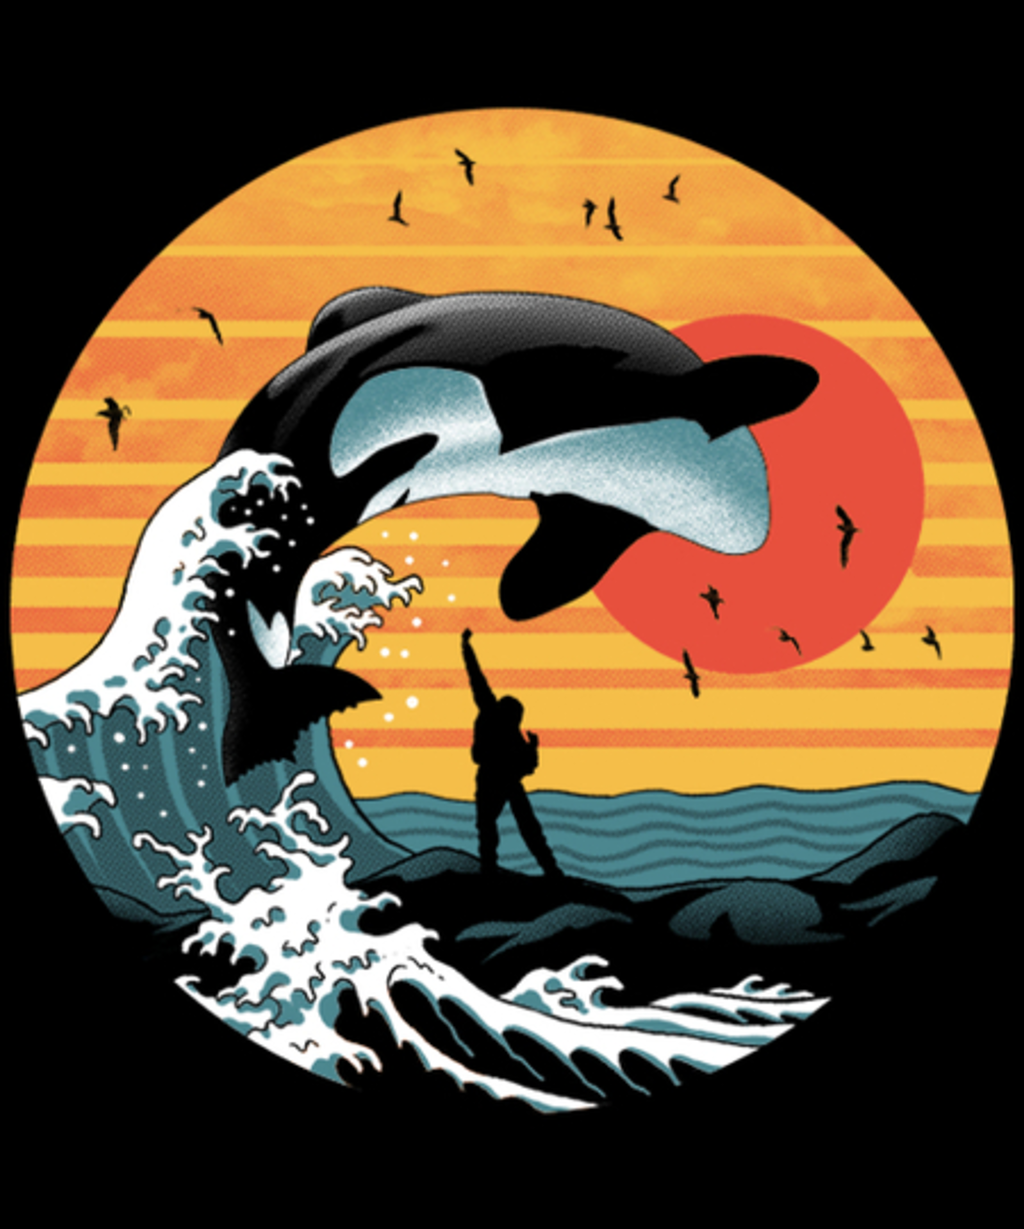 Qwertee: The Great Killer Whale